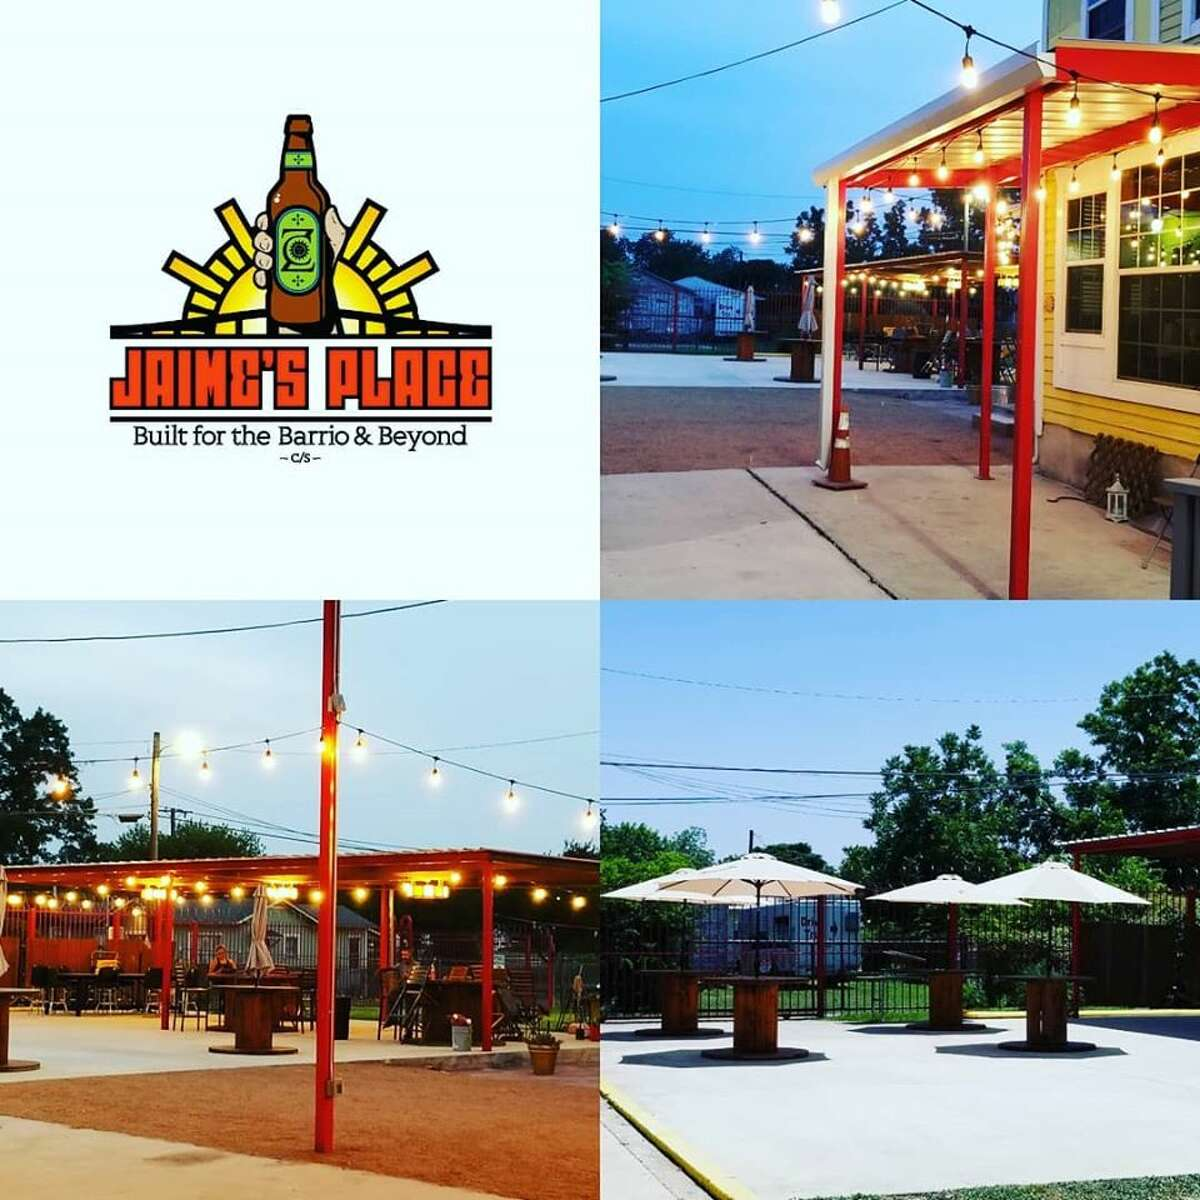 Jaime's Place will serve beer and wine as well as welcome local food trucks and entertainment to over 3,500 square feet with plenty of space for social distancing. San Antonio band Los Nahuatlatos will provide live music for the opening celebration.